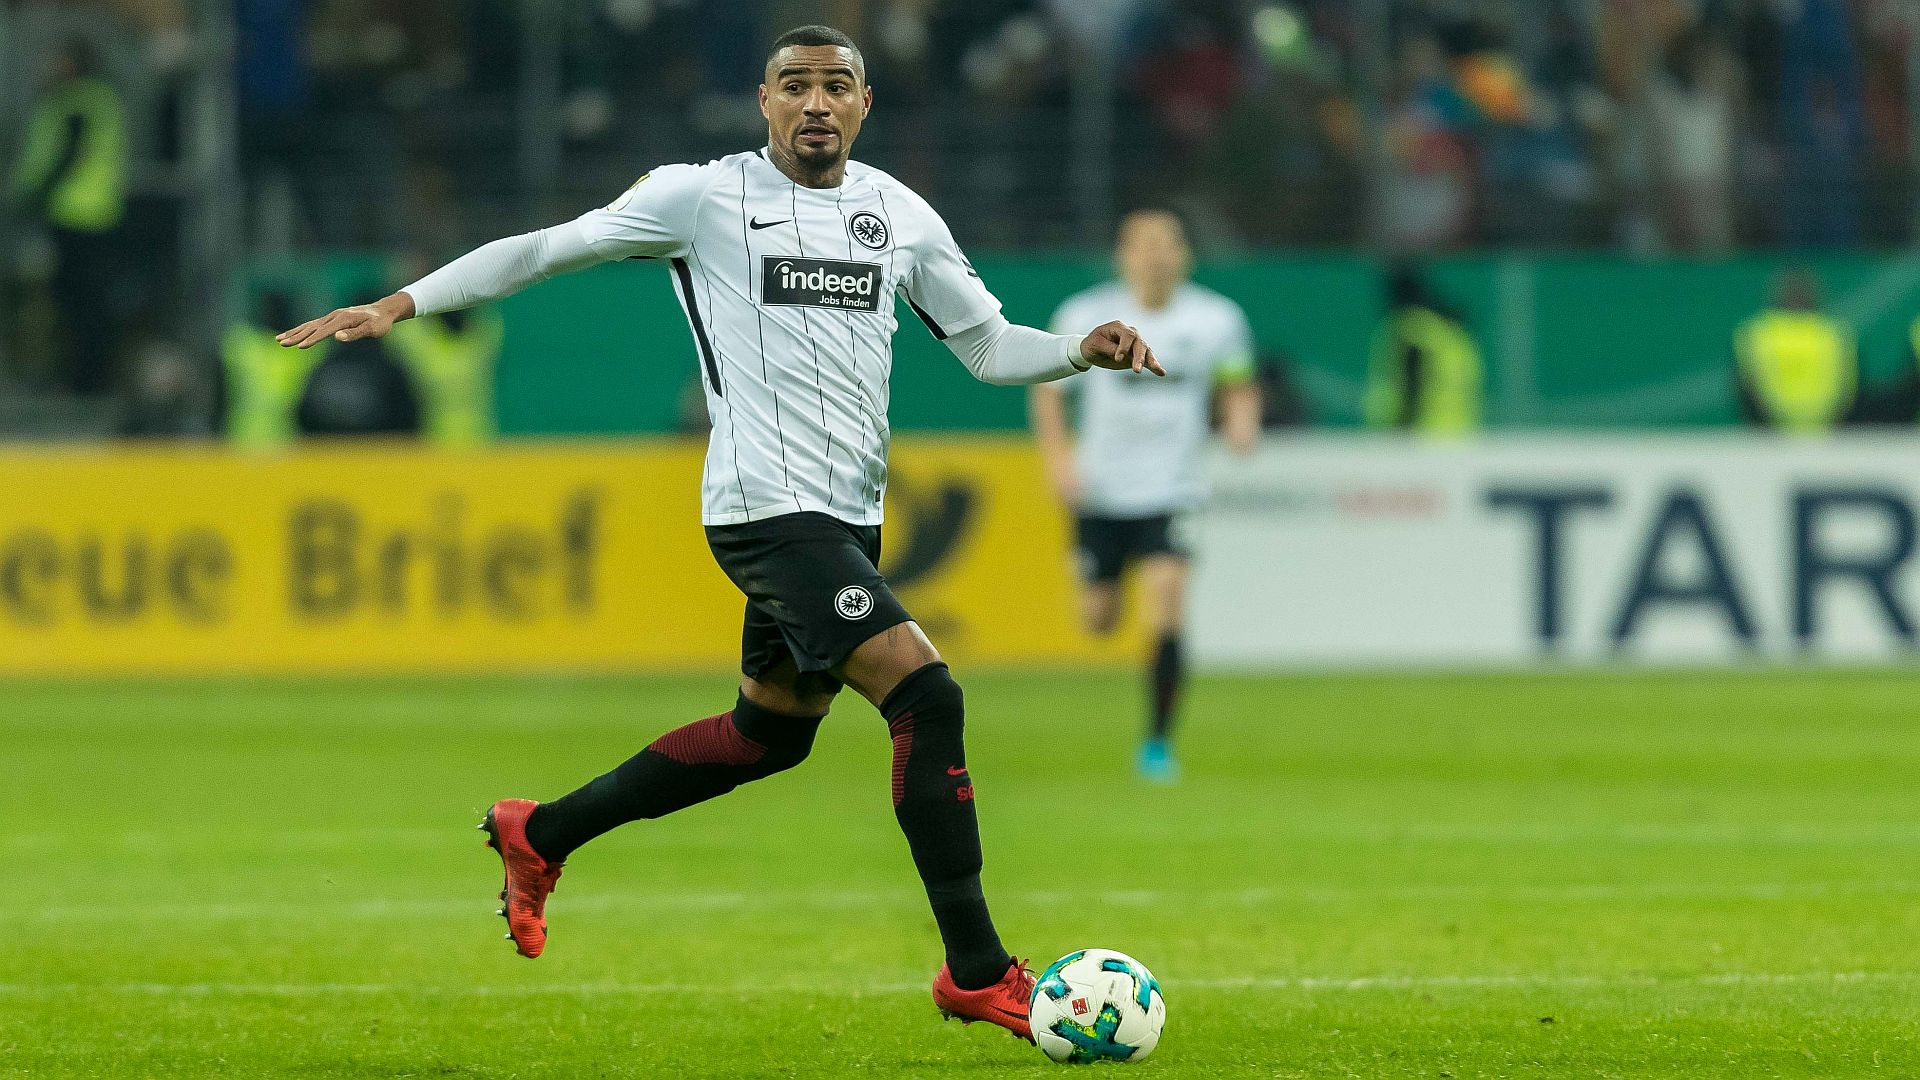 Eintracht Frankfurt go third with victory over RB Leipzig